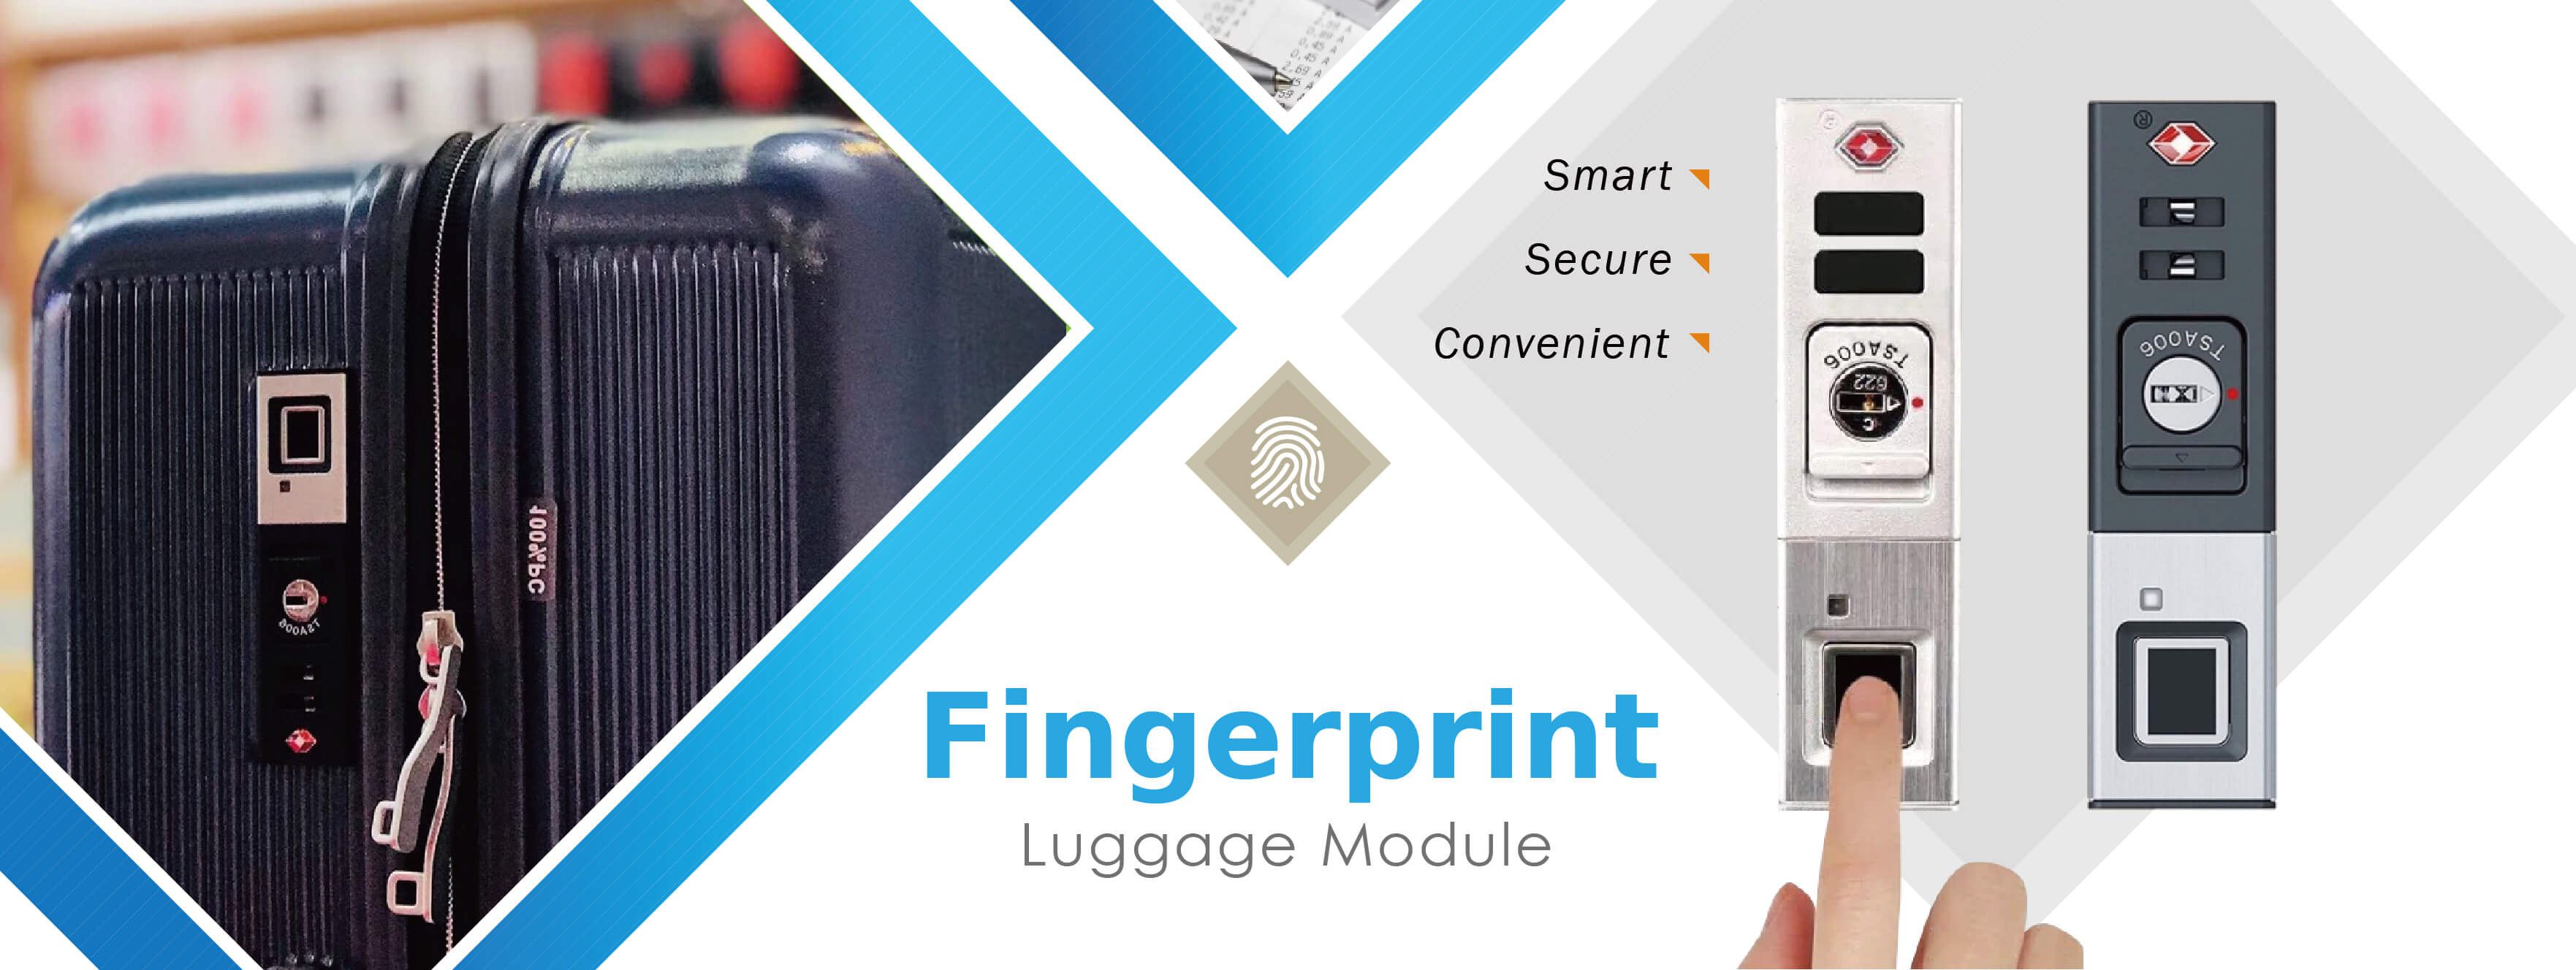 Smart Fingerprint TSA Fingerprint Lock | Midas Touch